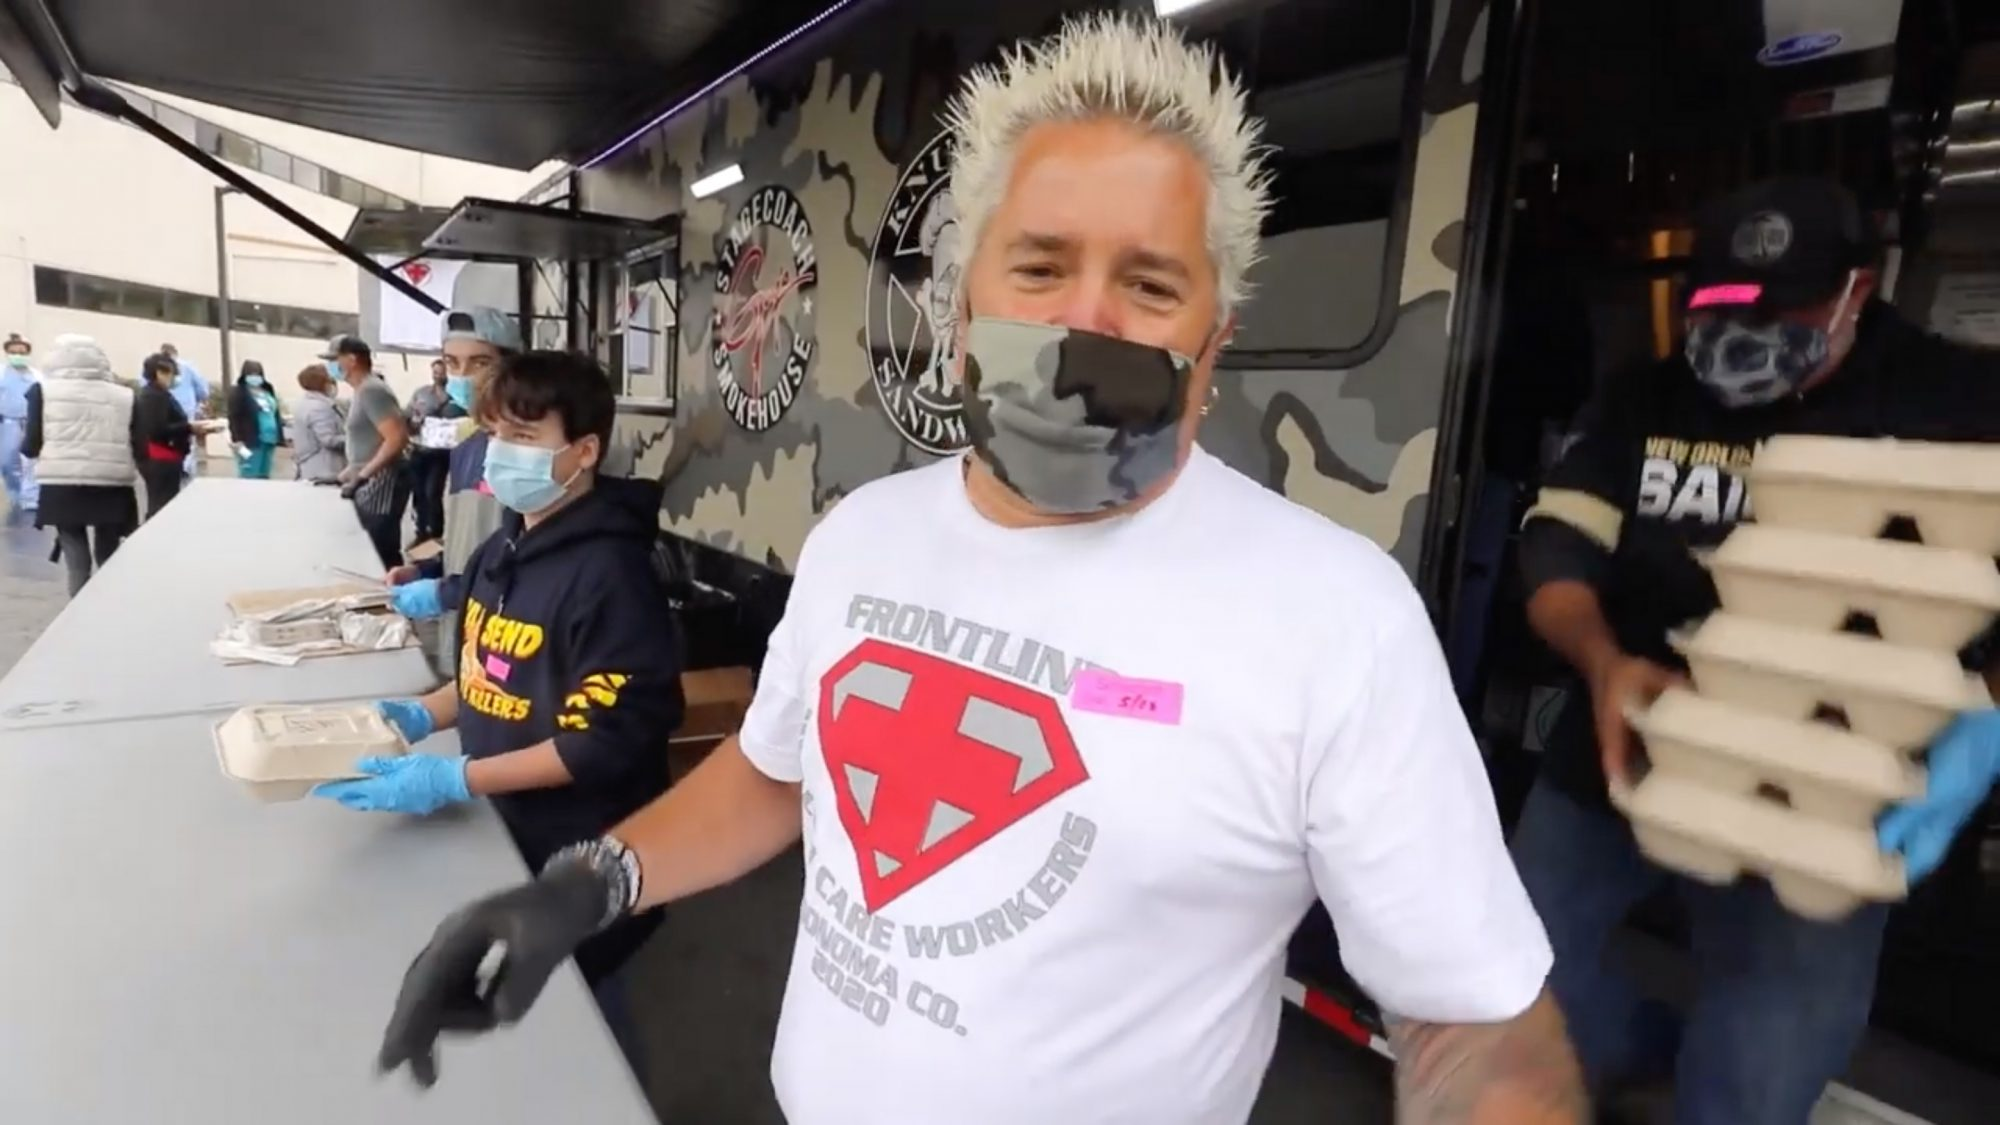 Celebrity chef Guy Fieri feeds 1,200 first responders and hospital workers in Santa Rosa